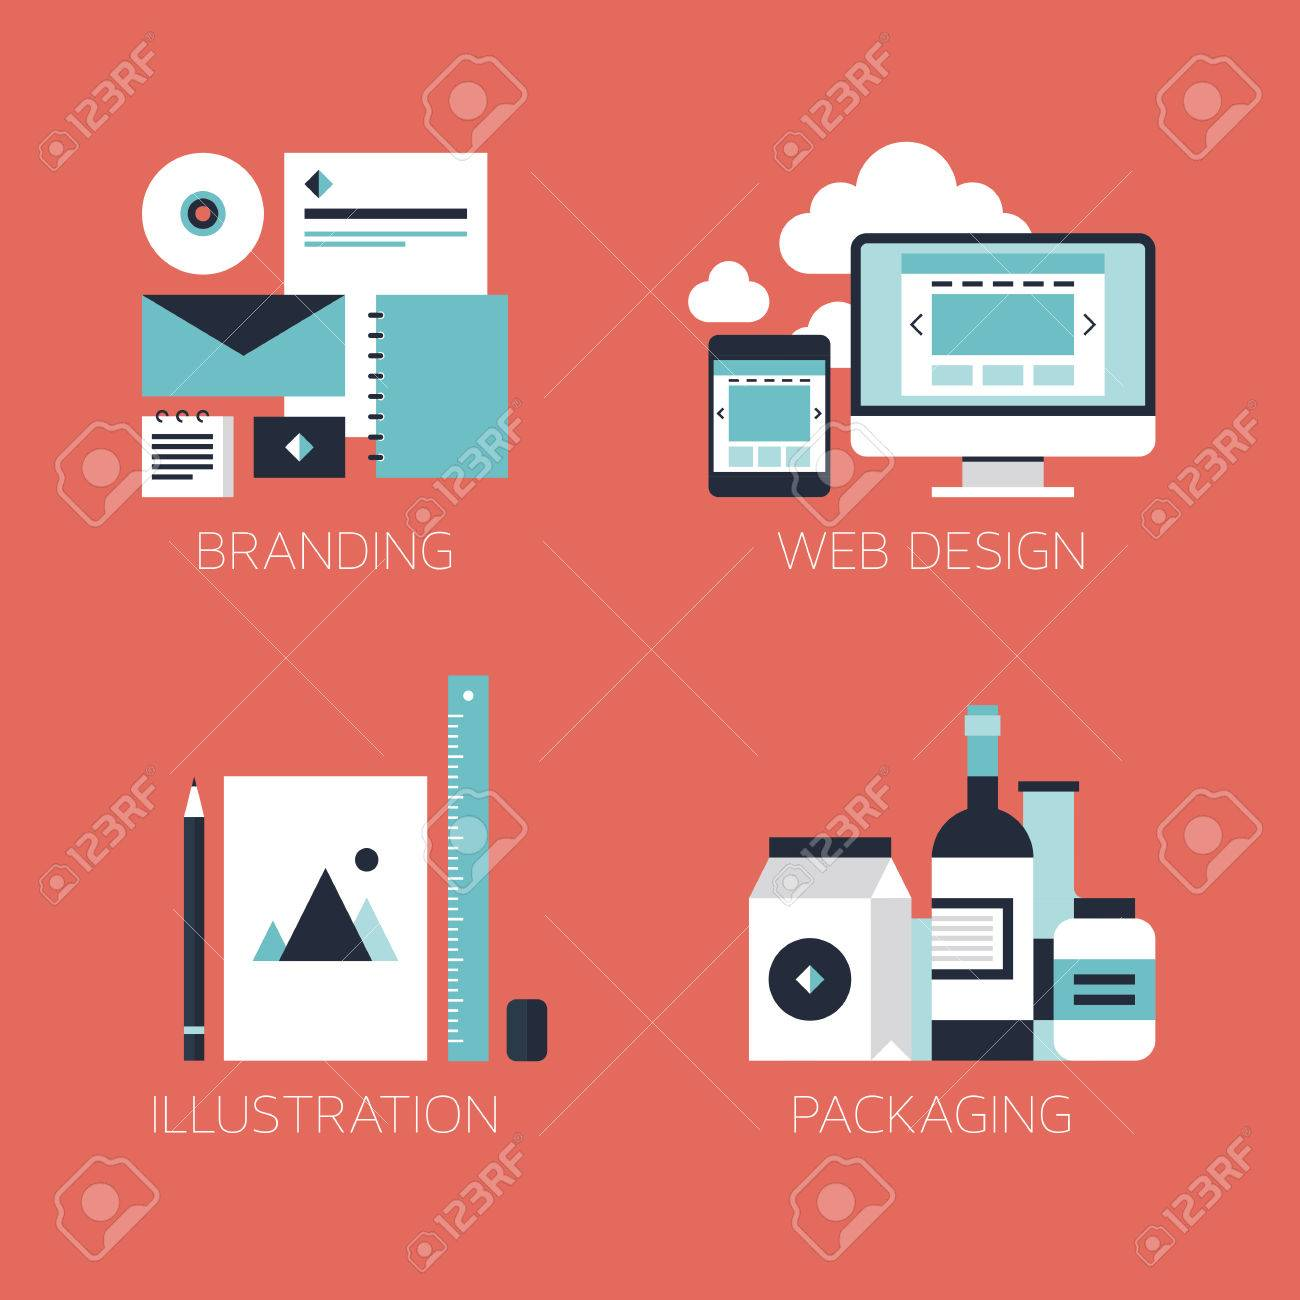 Flat design modern vector illustration icons set of brand identity style, web and mobile design, illustration objects and packaging design for company branding Isolated on stylish red background - 23864939